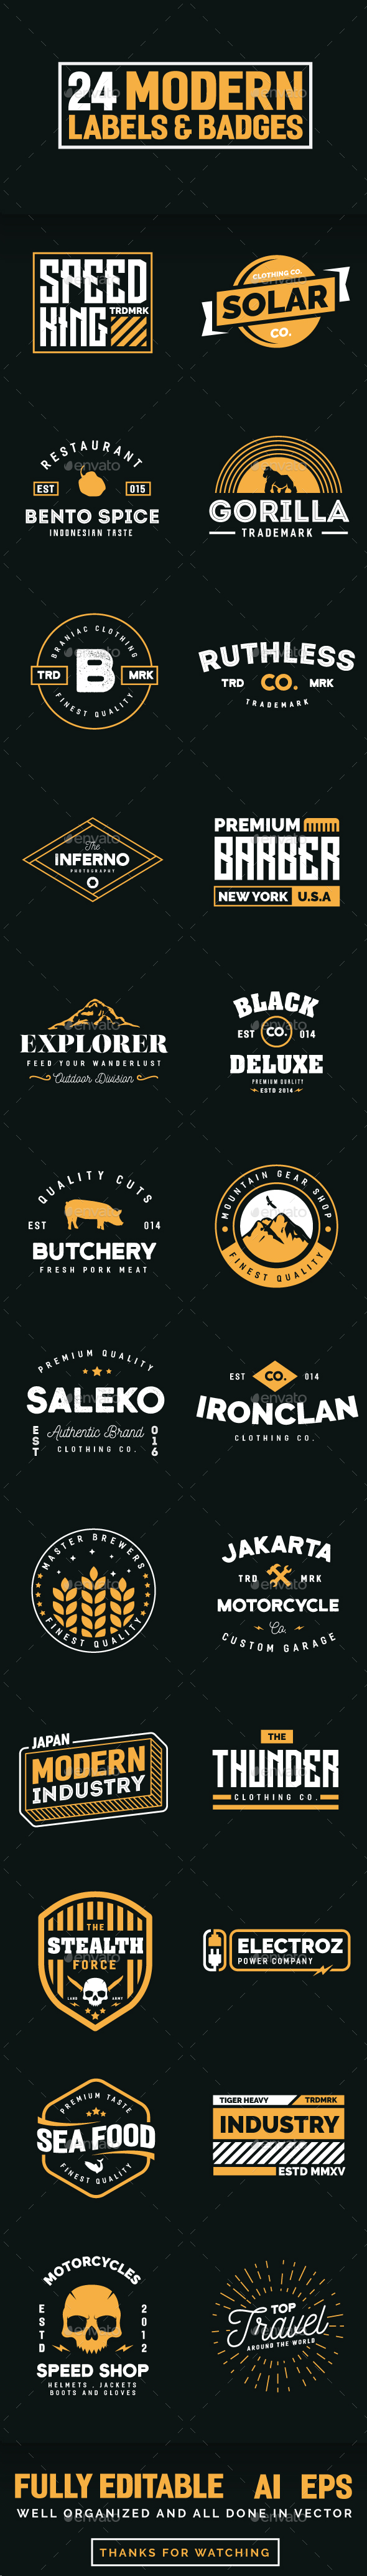 24 Modern Label and Badges - Badges & Stickers Web Elements